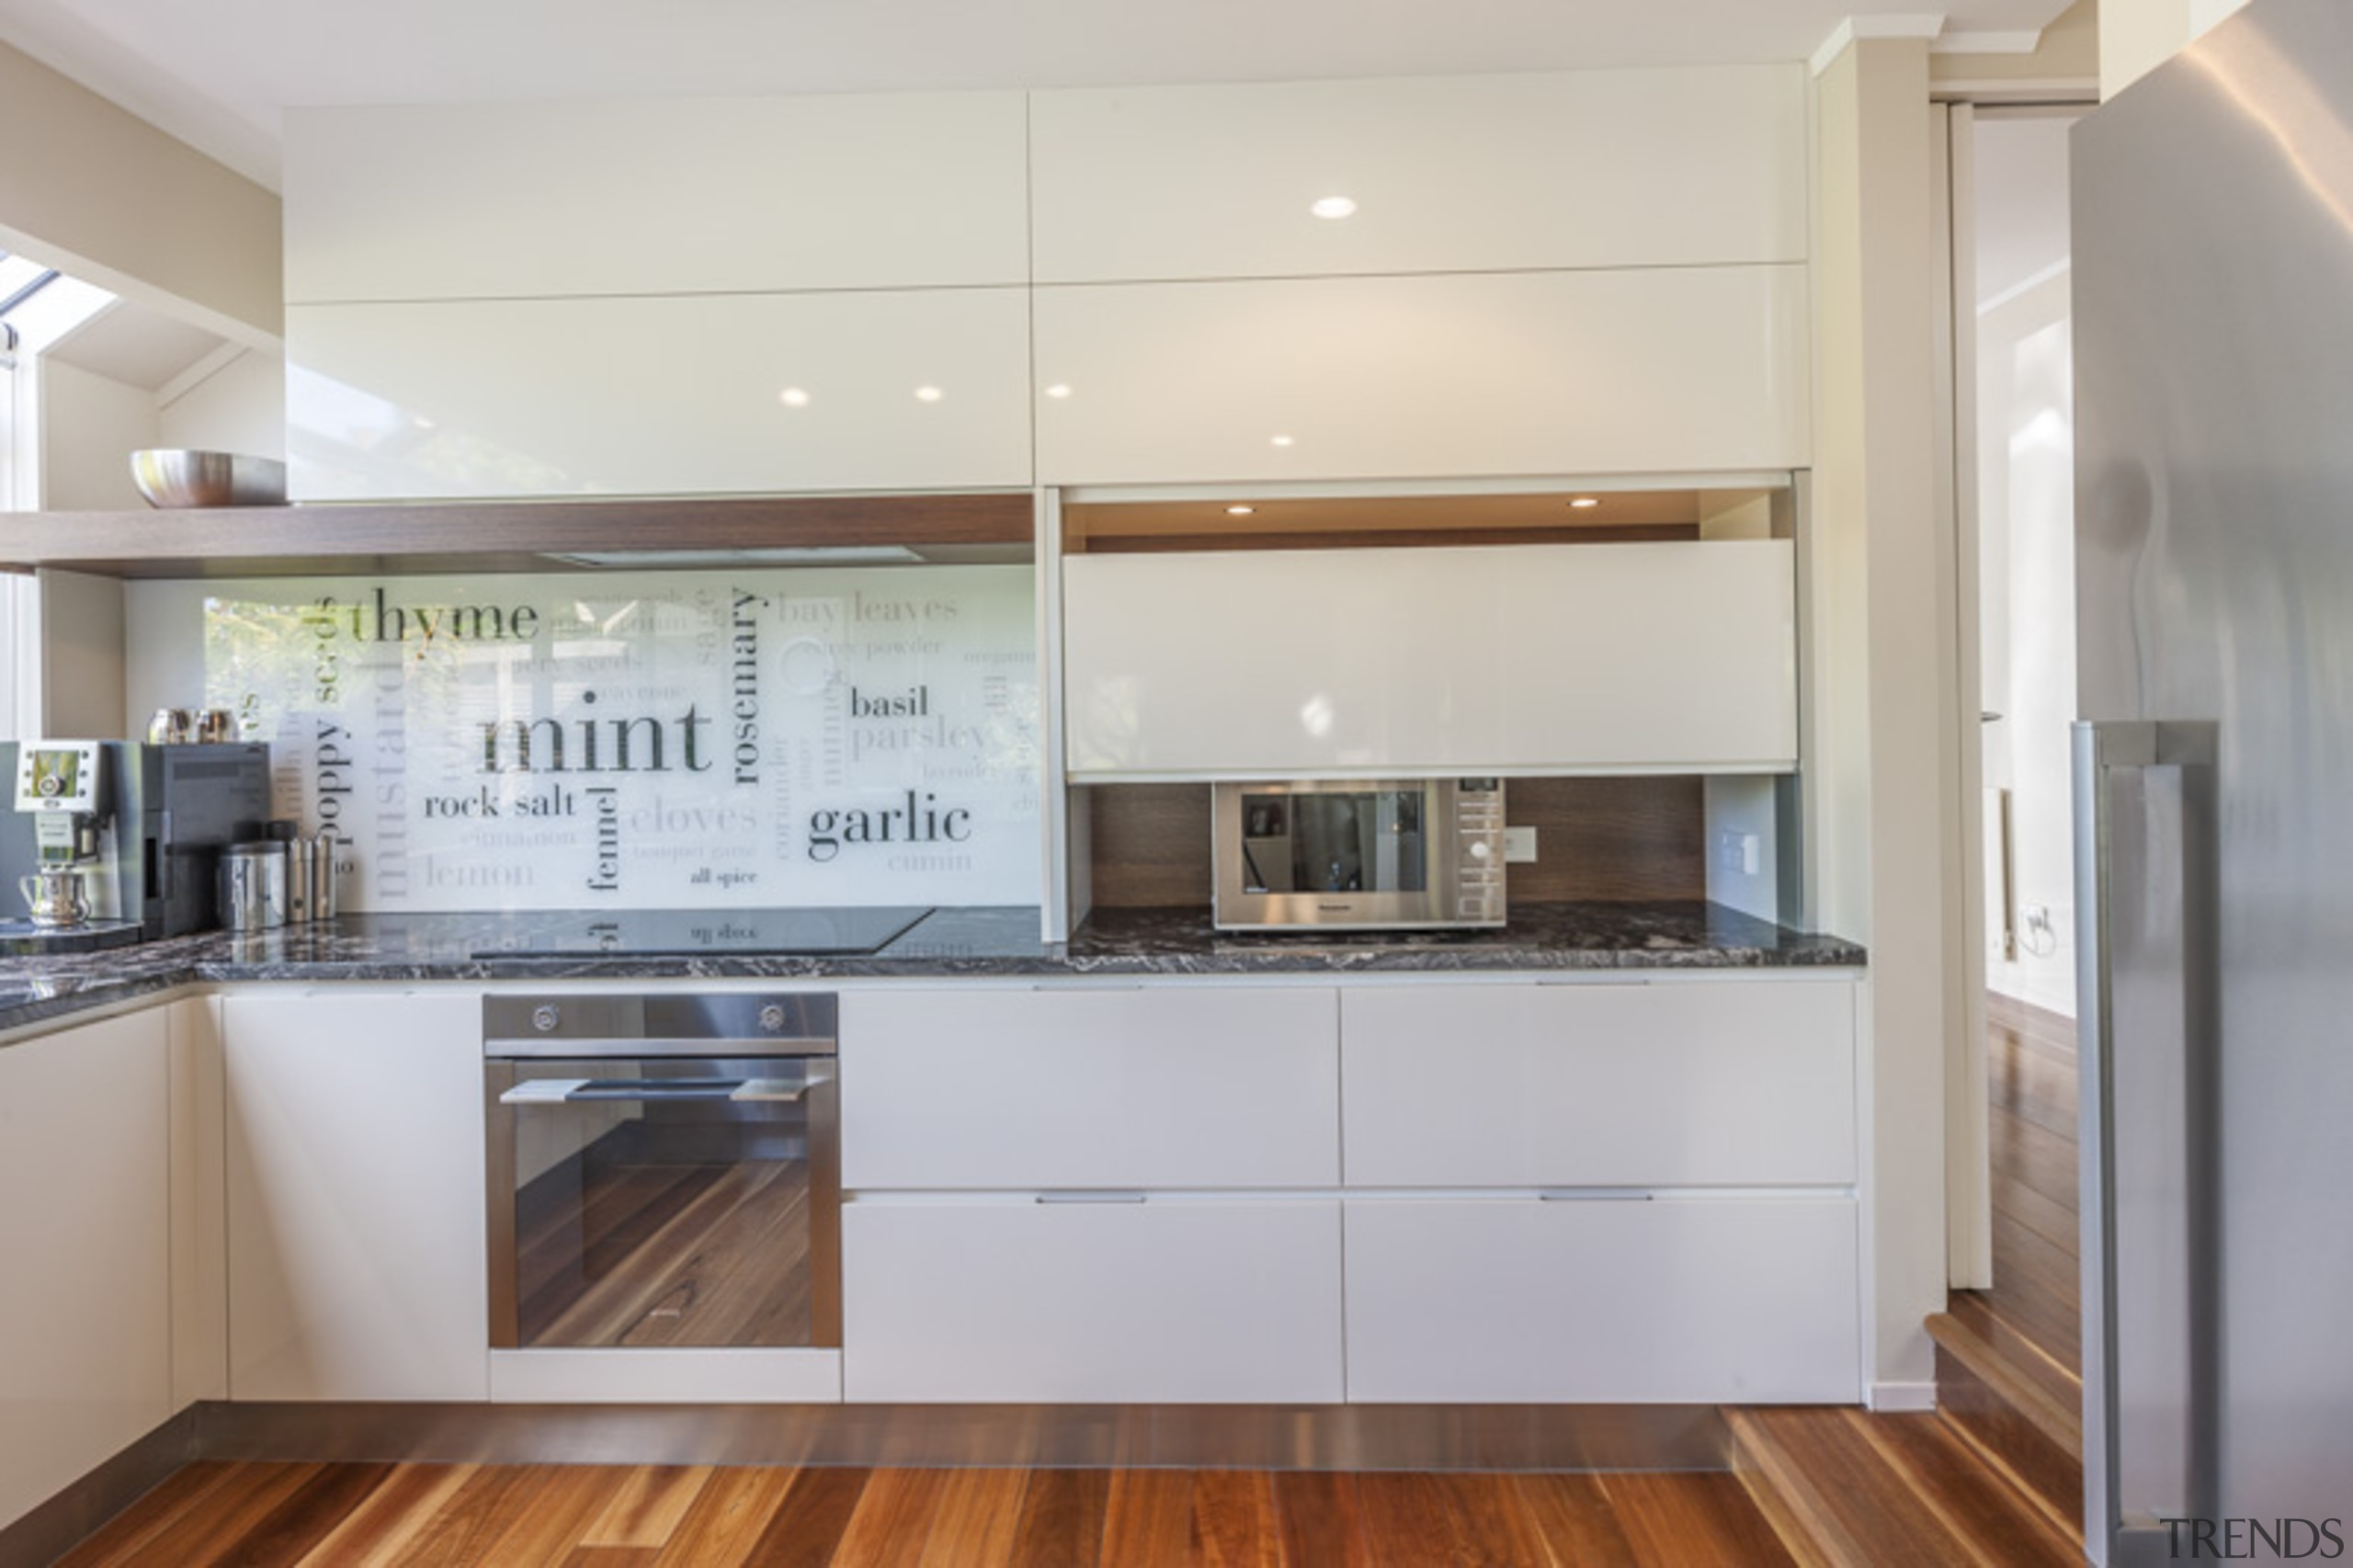 St. Heliers II - cabinetry | countertop | cabinetry, countertop, cuisine classique, interior design, kitchen, real estate, gray